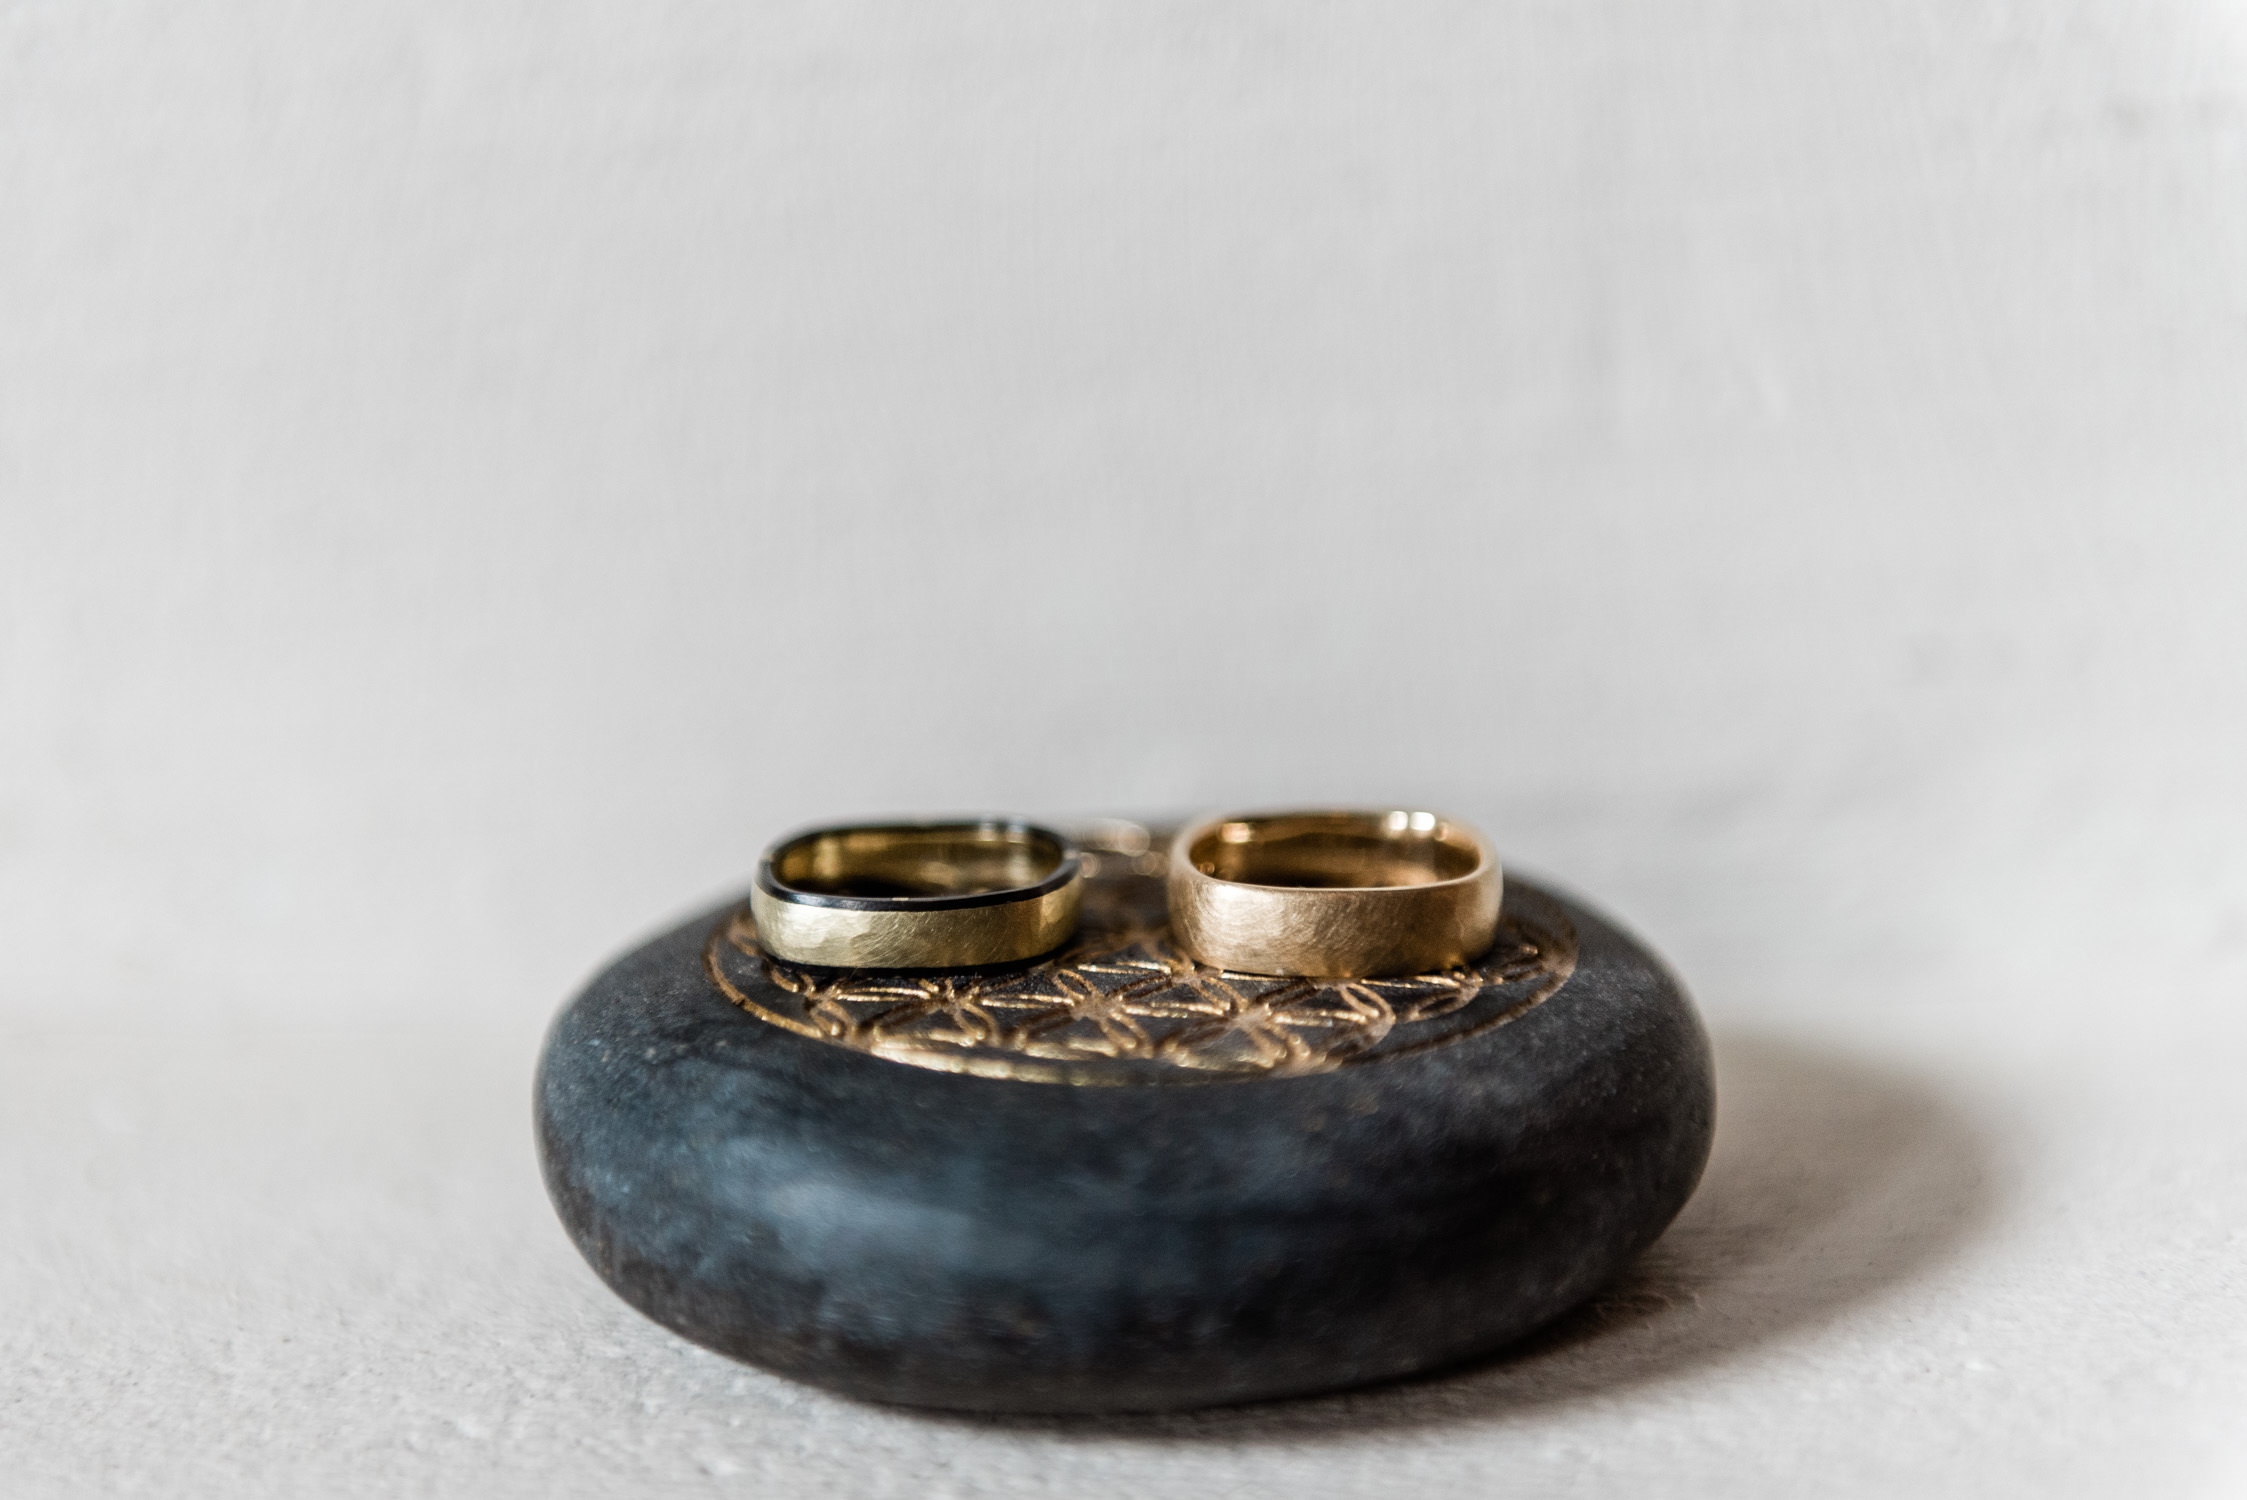 Two male wedding rings at a wedding in Amsterdam